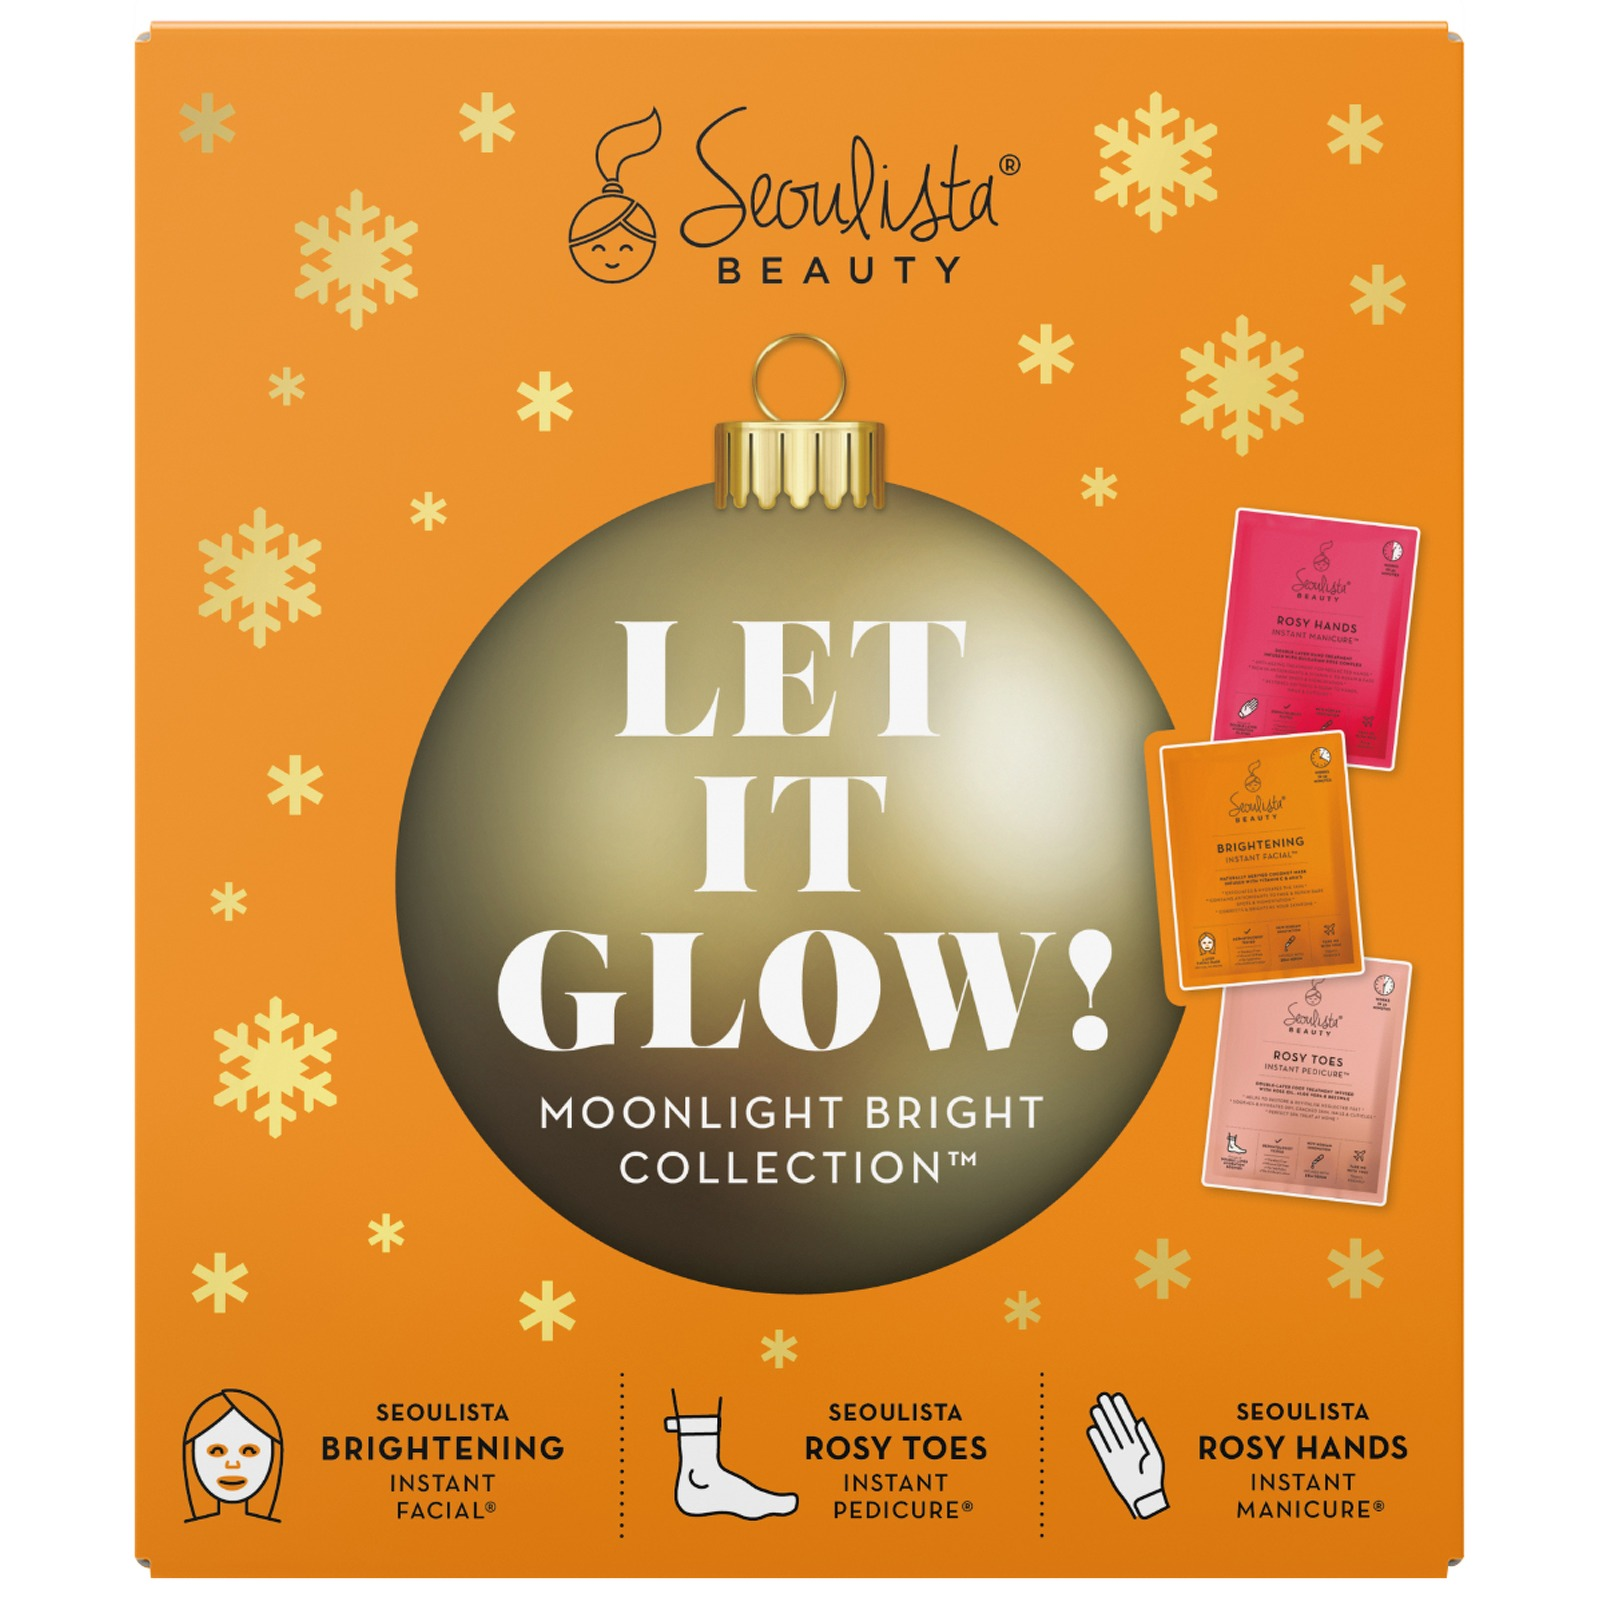 Seoulista Beauty Gifts & Sets Let It Glow Moonlight Bright Collection